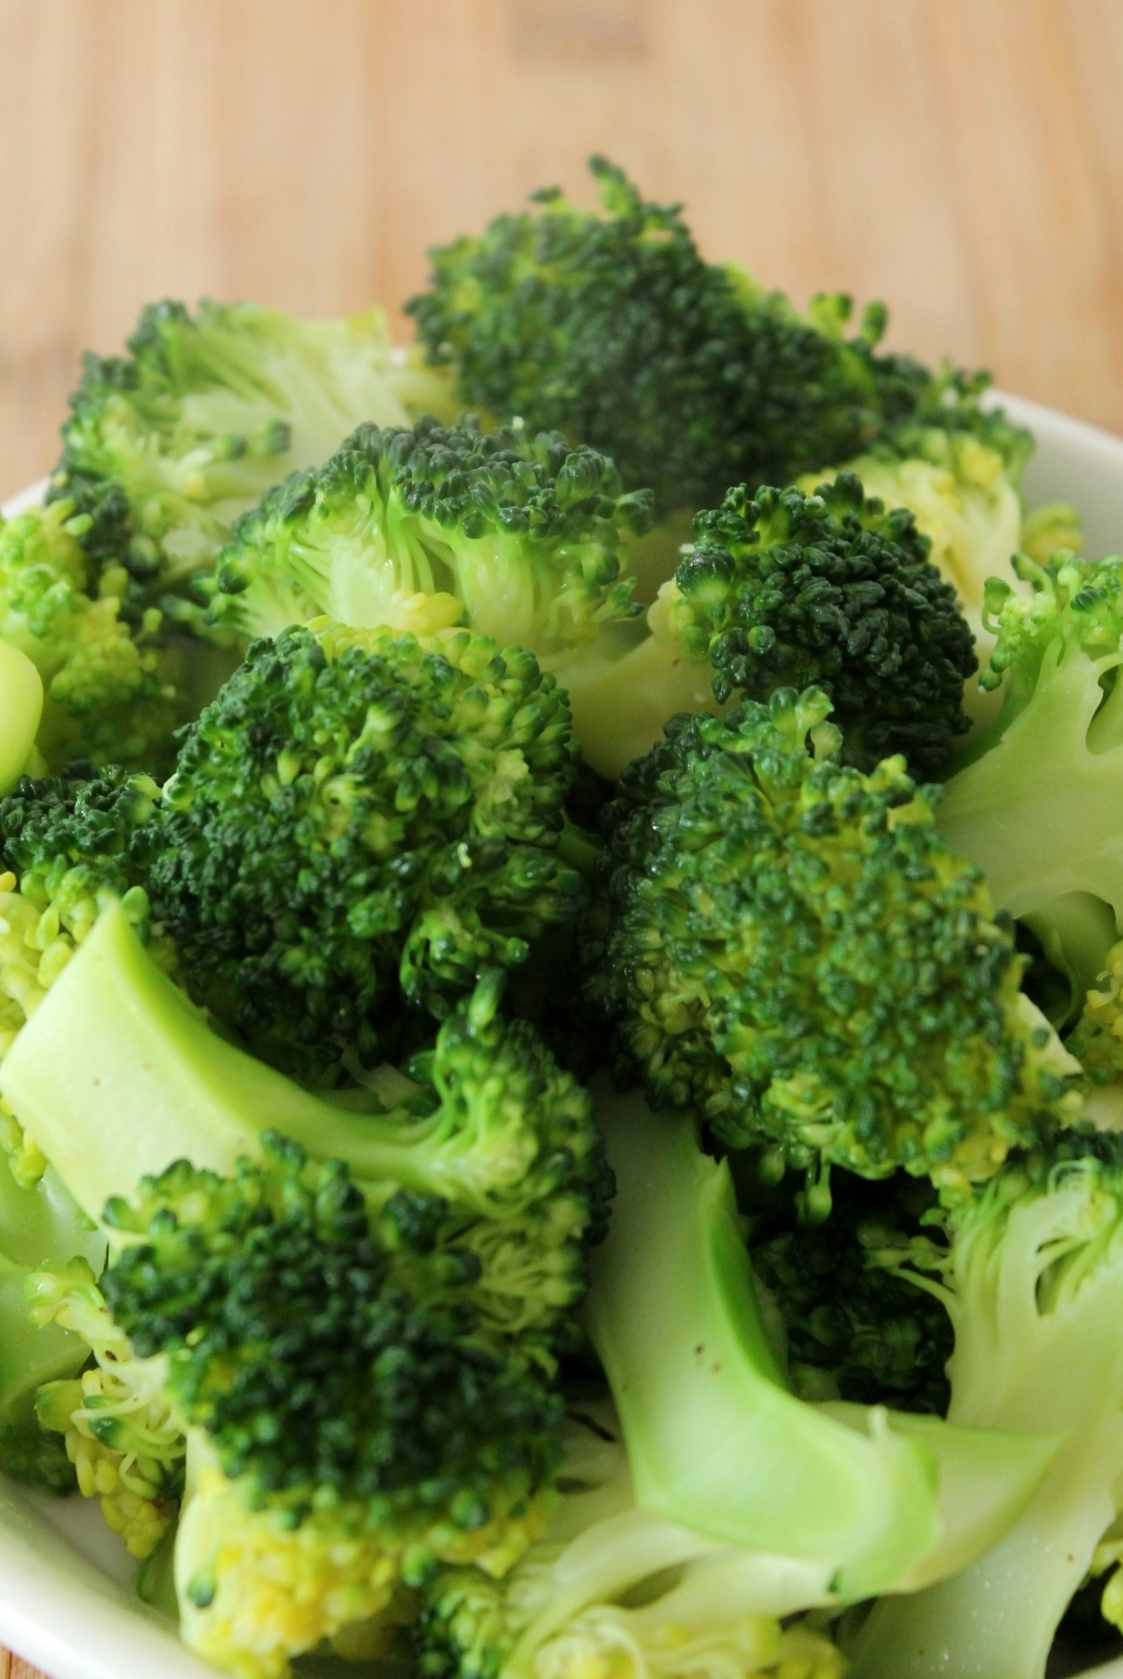 buttery-butter-lemon-broccoli-vegetables-dressing-limahl-asmall-tiny-budget-cooking-recipe-easy